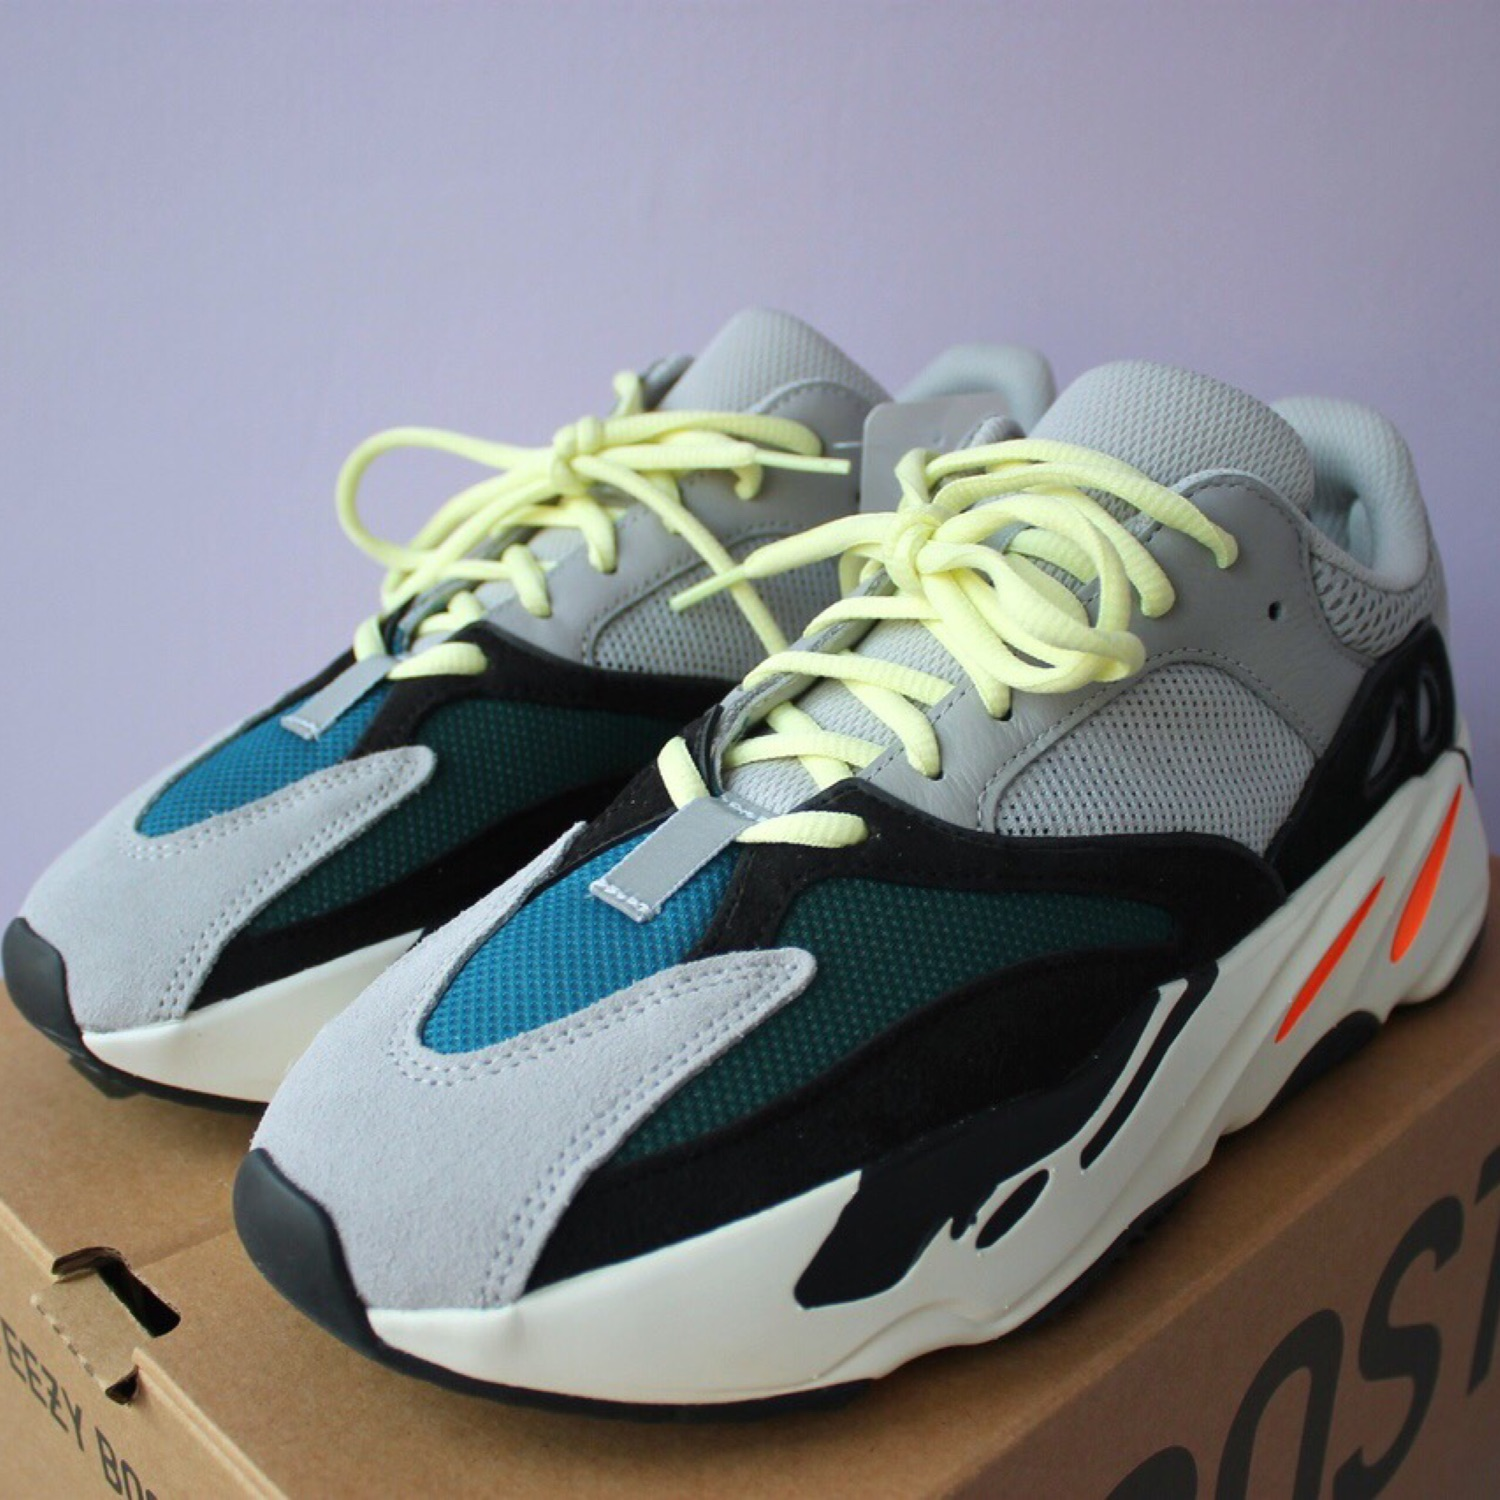 finest selection ce7d3 f46dd Adidas X Kanye West Yeezy Boost 700 Wave Runner